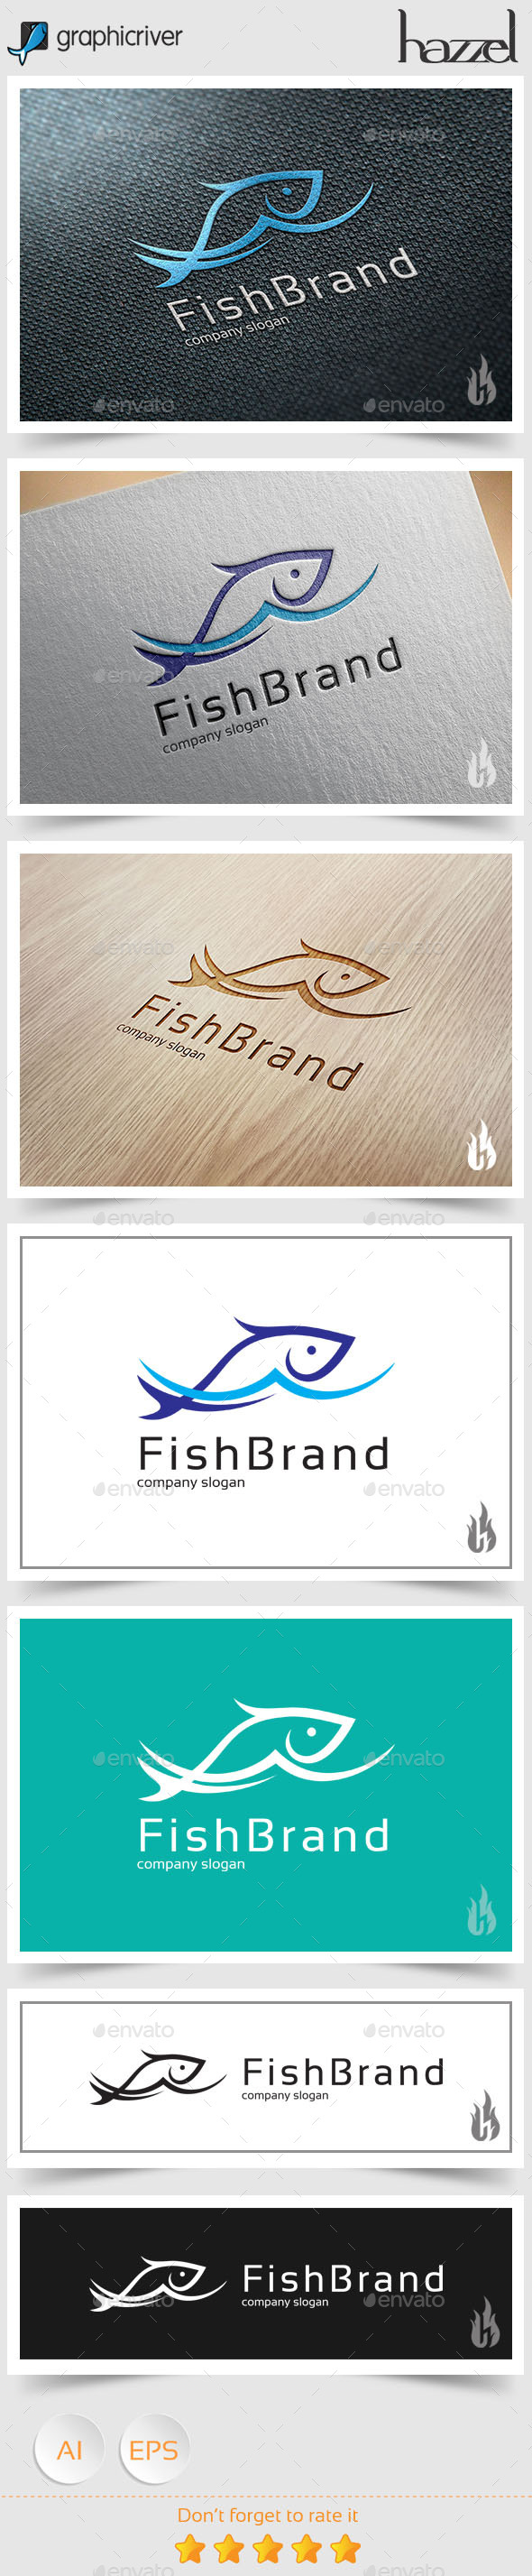 GraphicRiver Fish Brand Logo 8977875